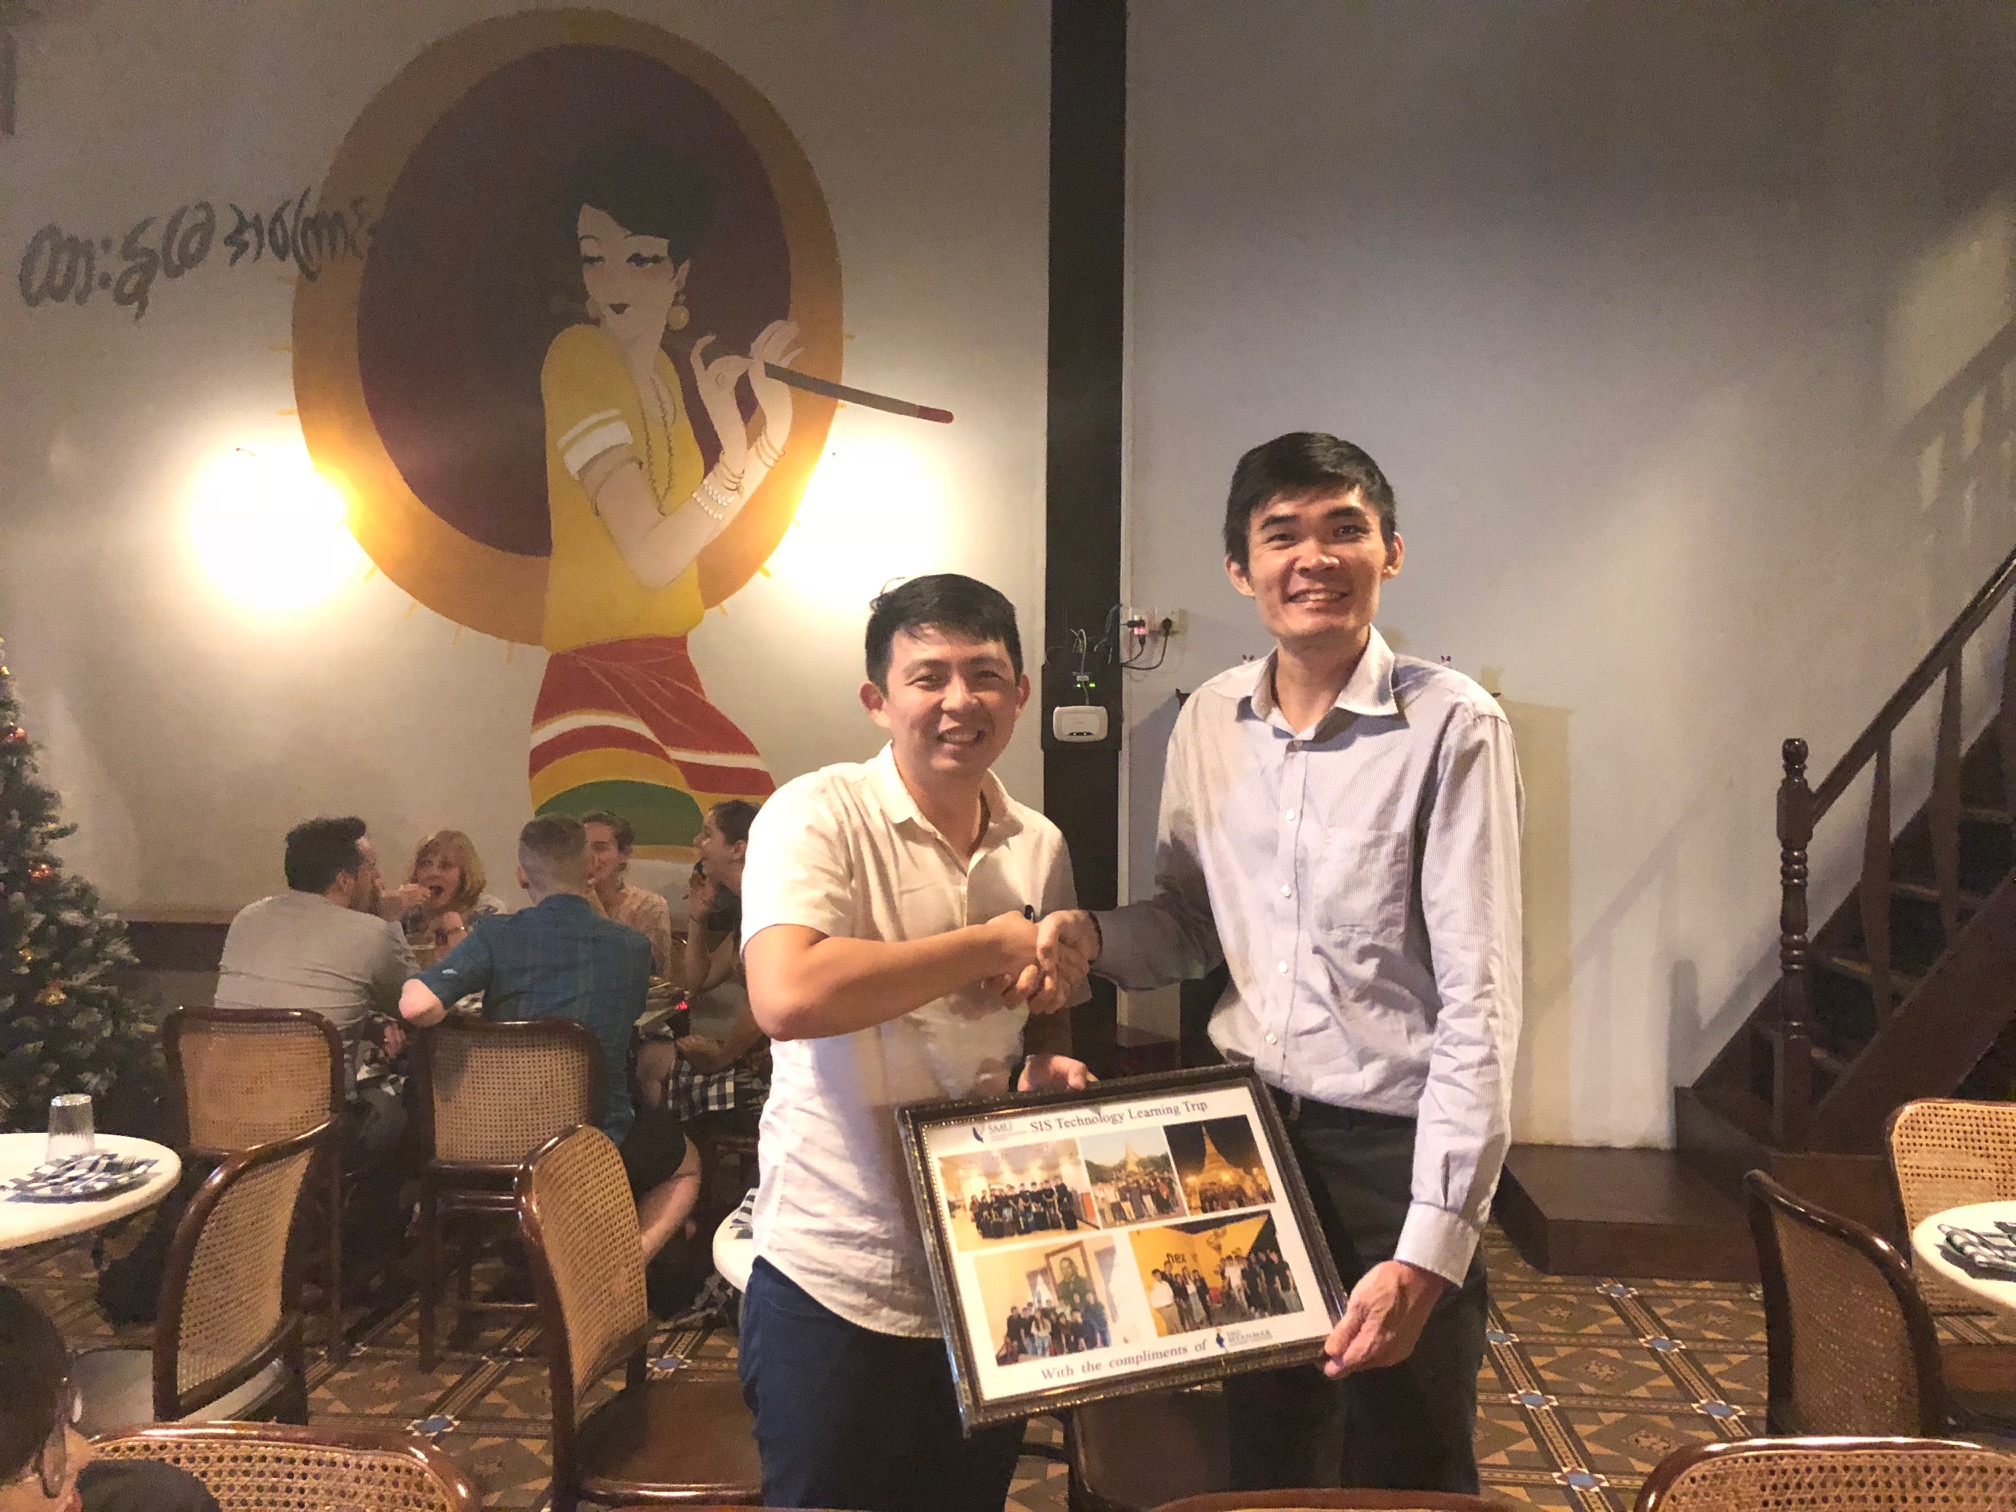 SMU MAC President was giving a welcome gift to Prof Lee Yeow Leong & team from SMU SIS on Dec 13, 2017.jpg